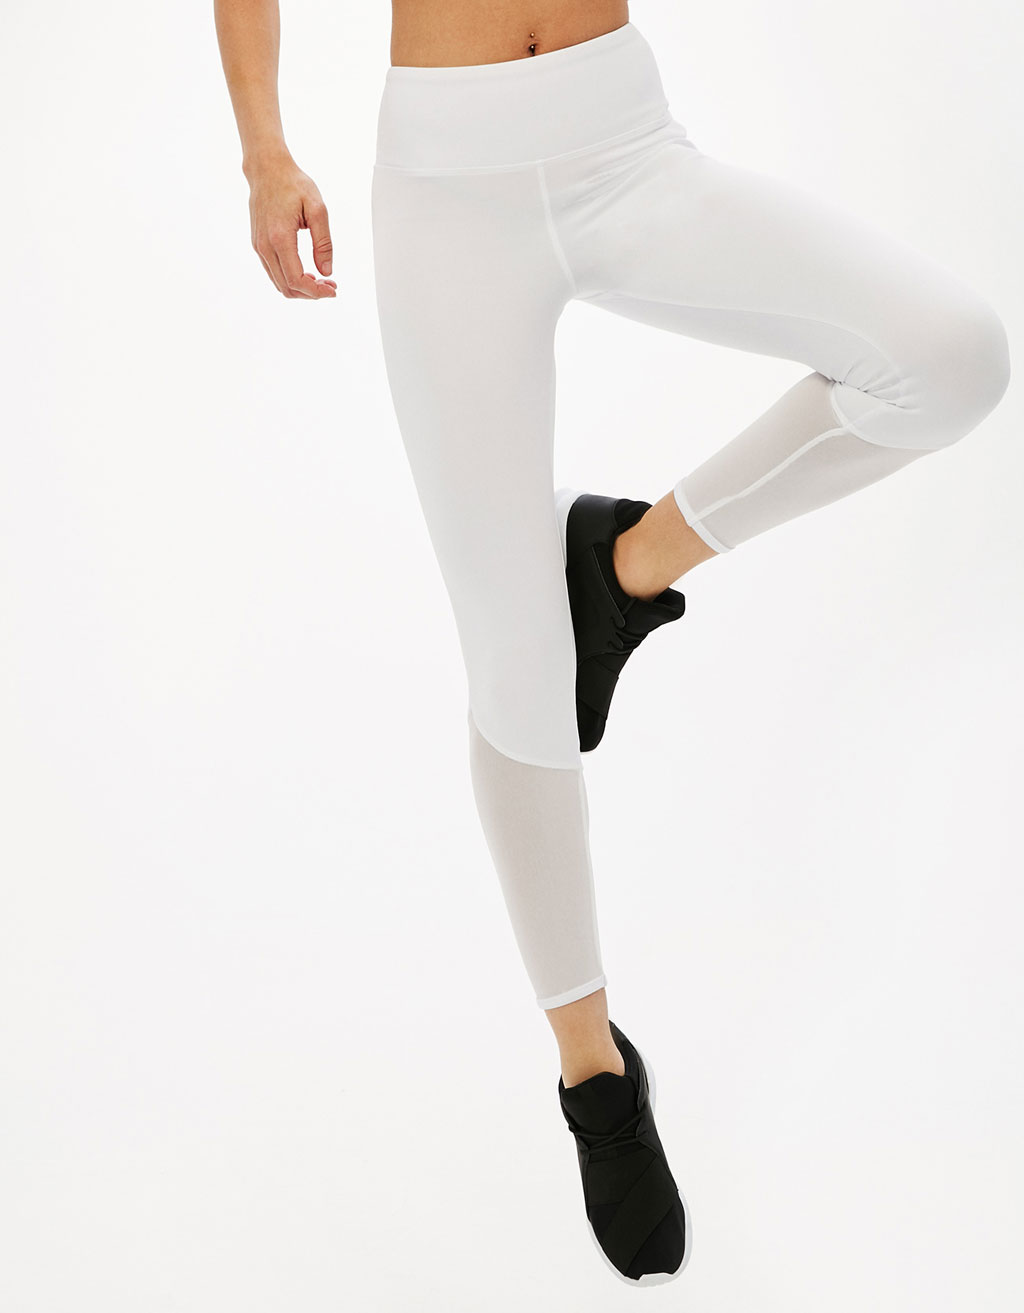 White technical sports leggings